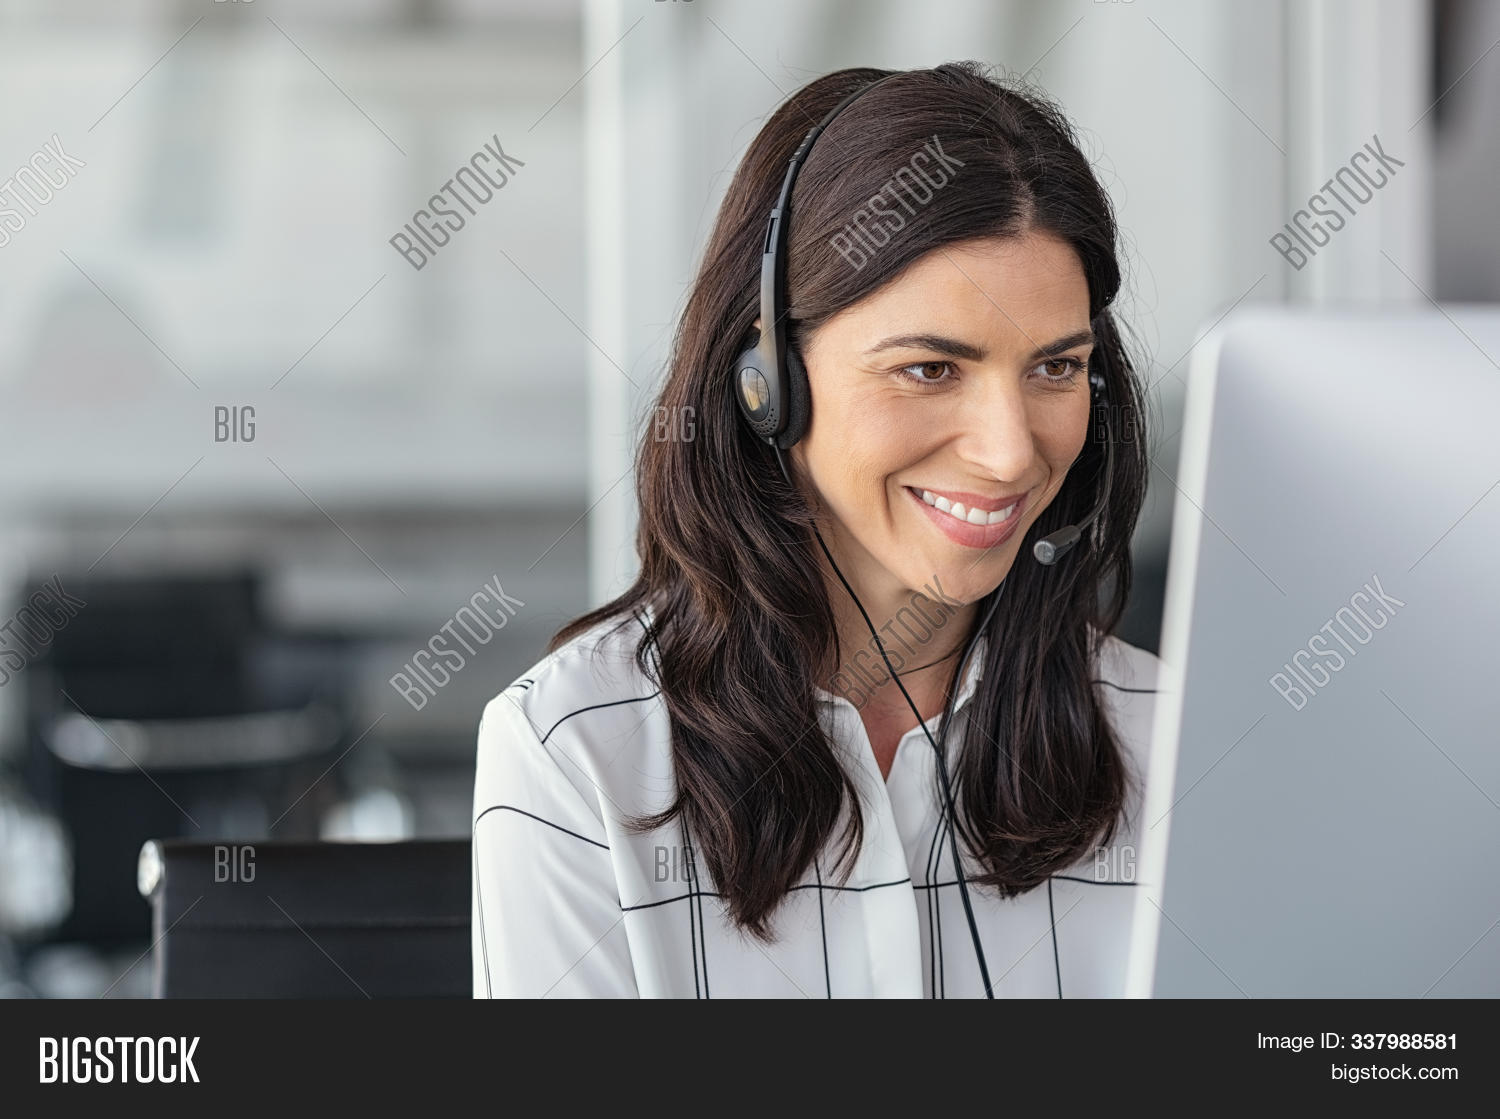 Call center business woman talking on headset. Portrait of mature woman working on computer in office. Smiling telephone operator with headset working on support customer service with copy space.